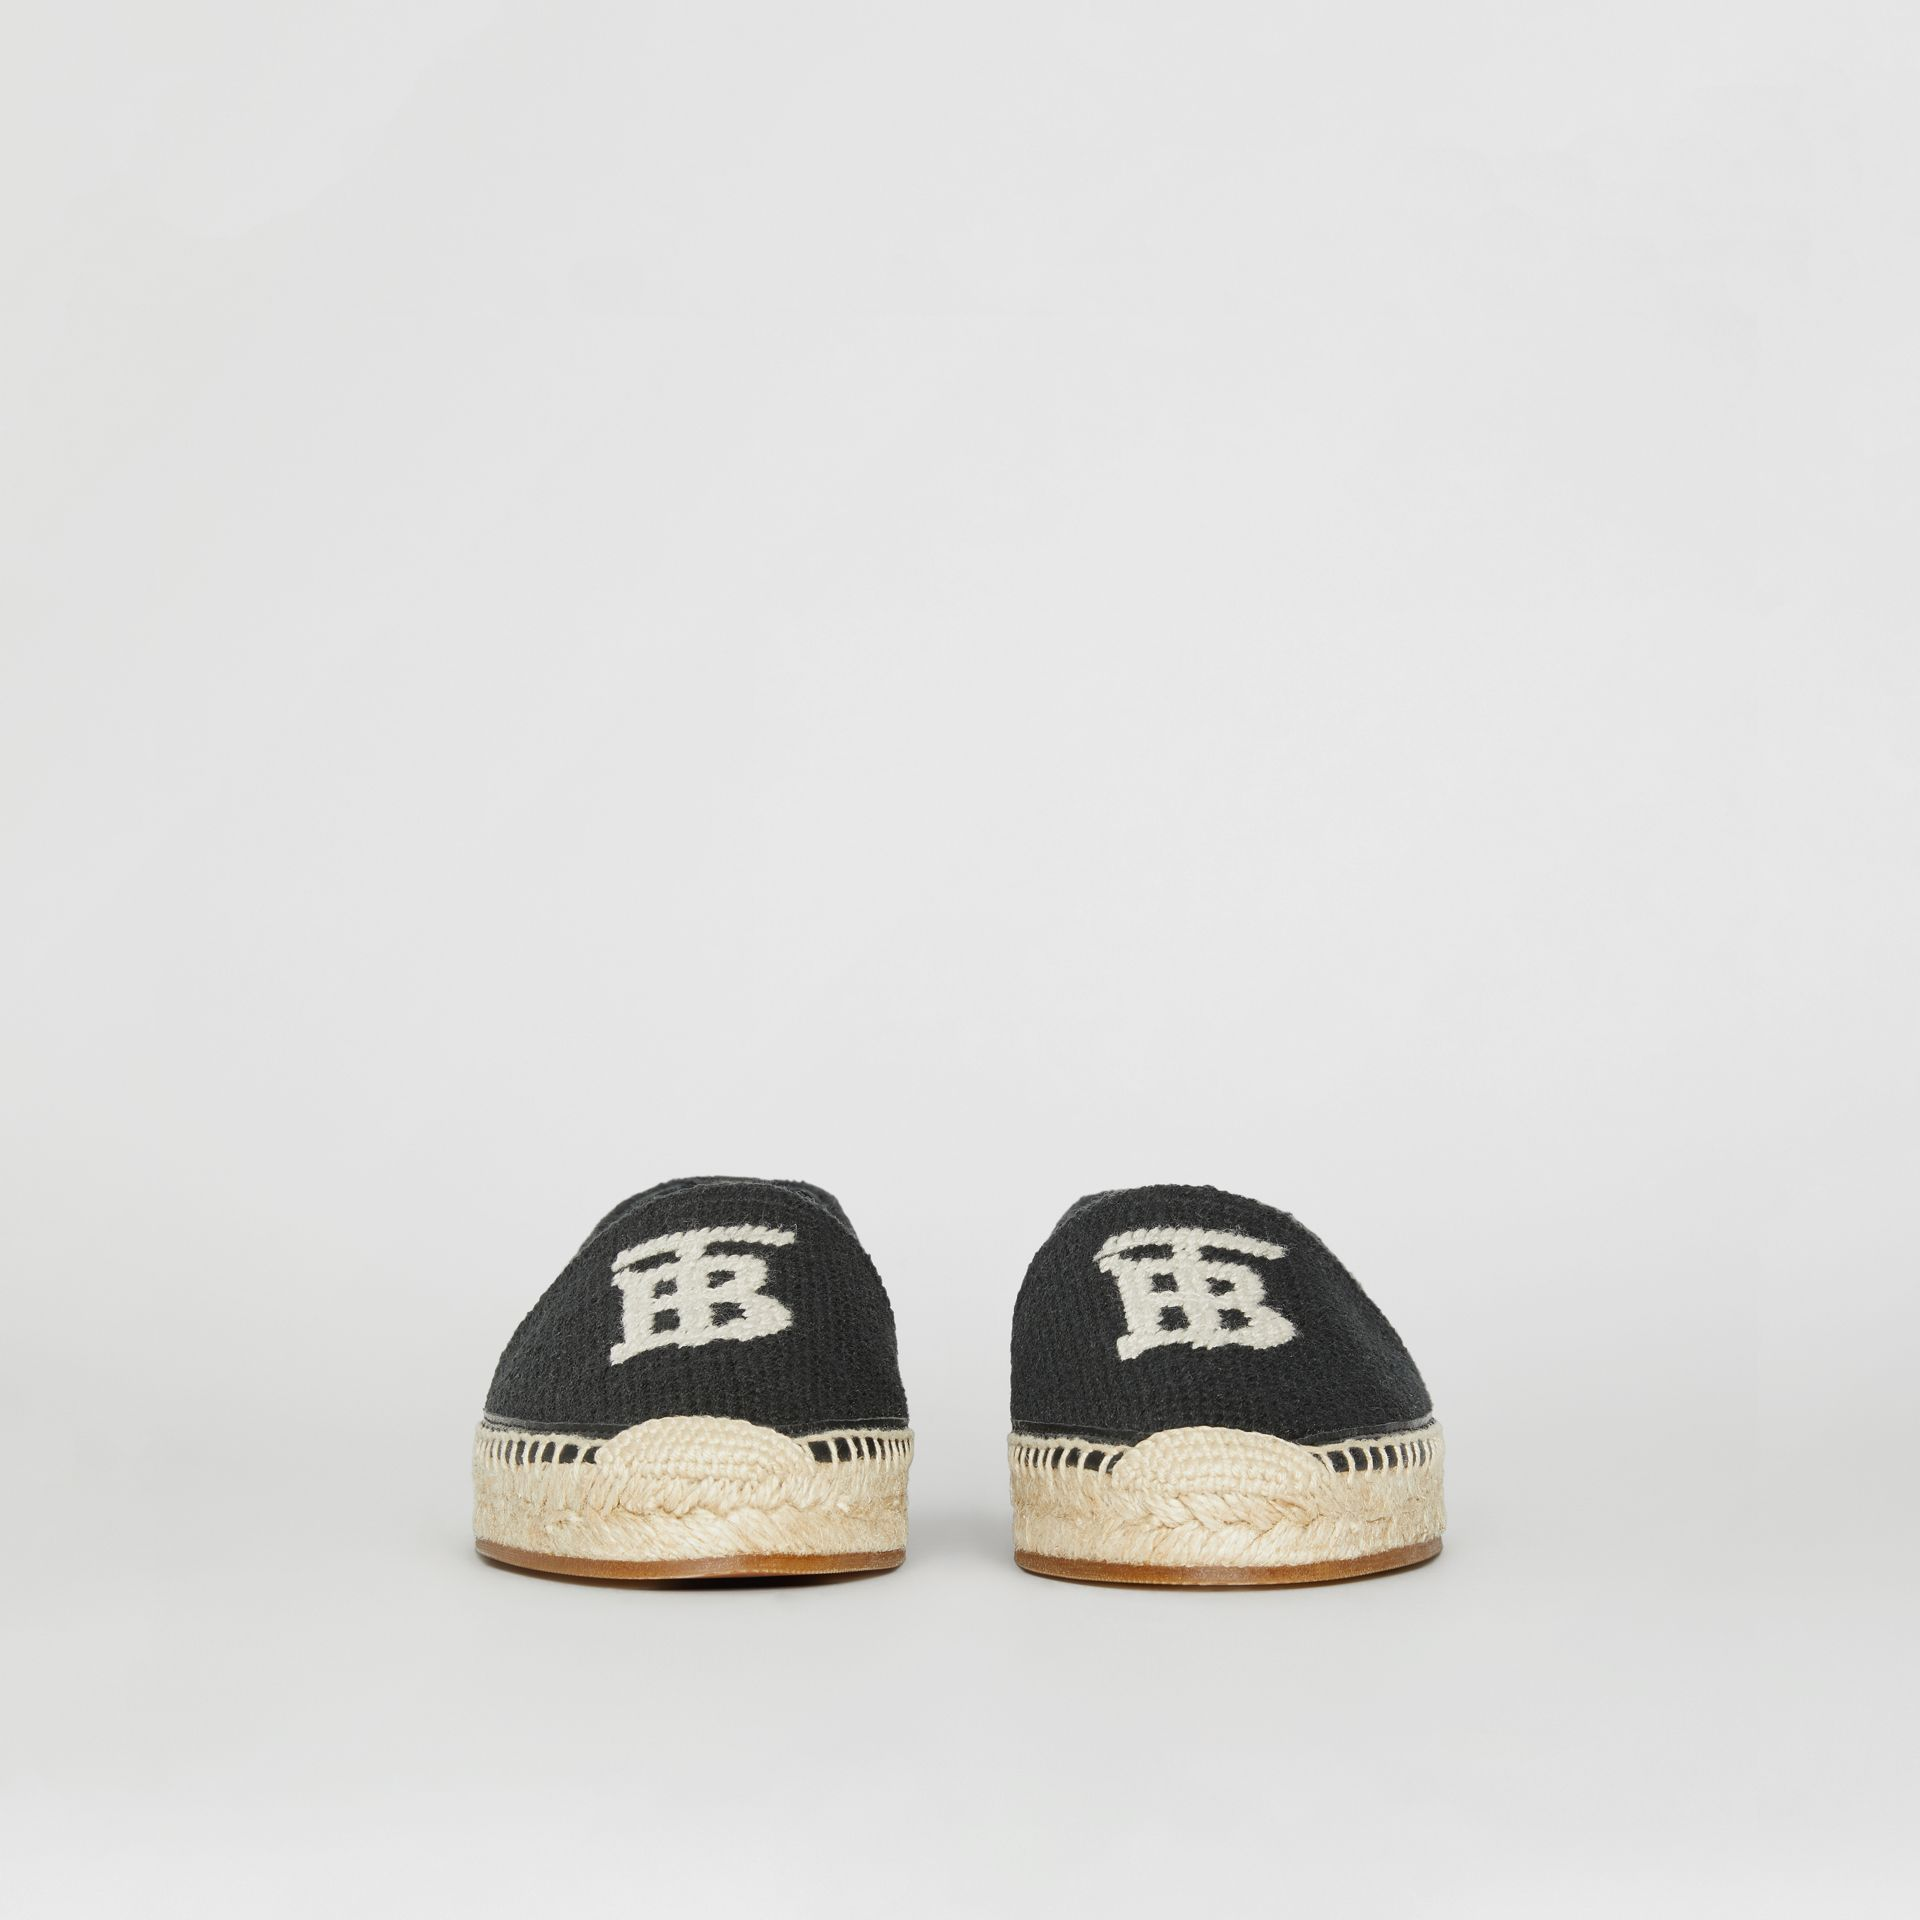 Monogram Motif Cotton and Leather Espadrilles in Black/ecru - Women | Burberry Australia - gallery image 3